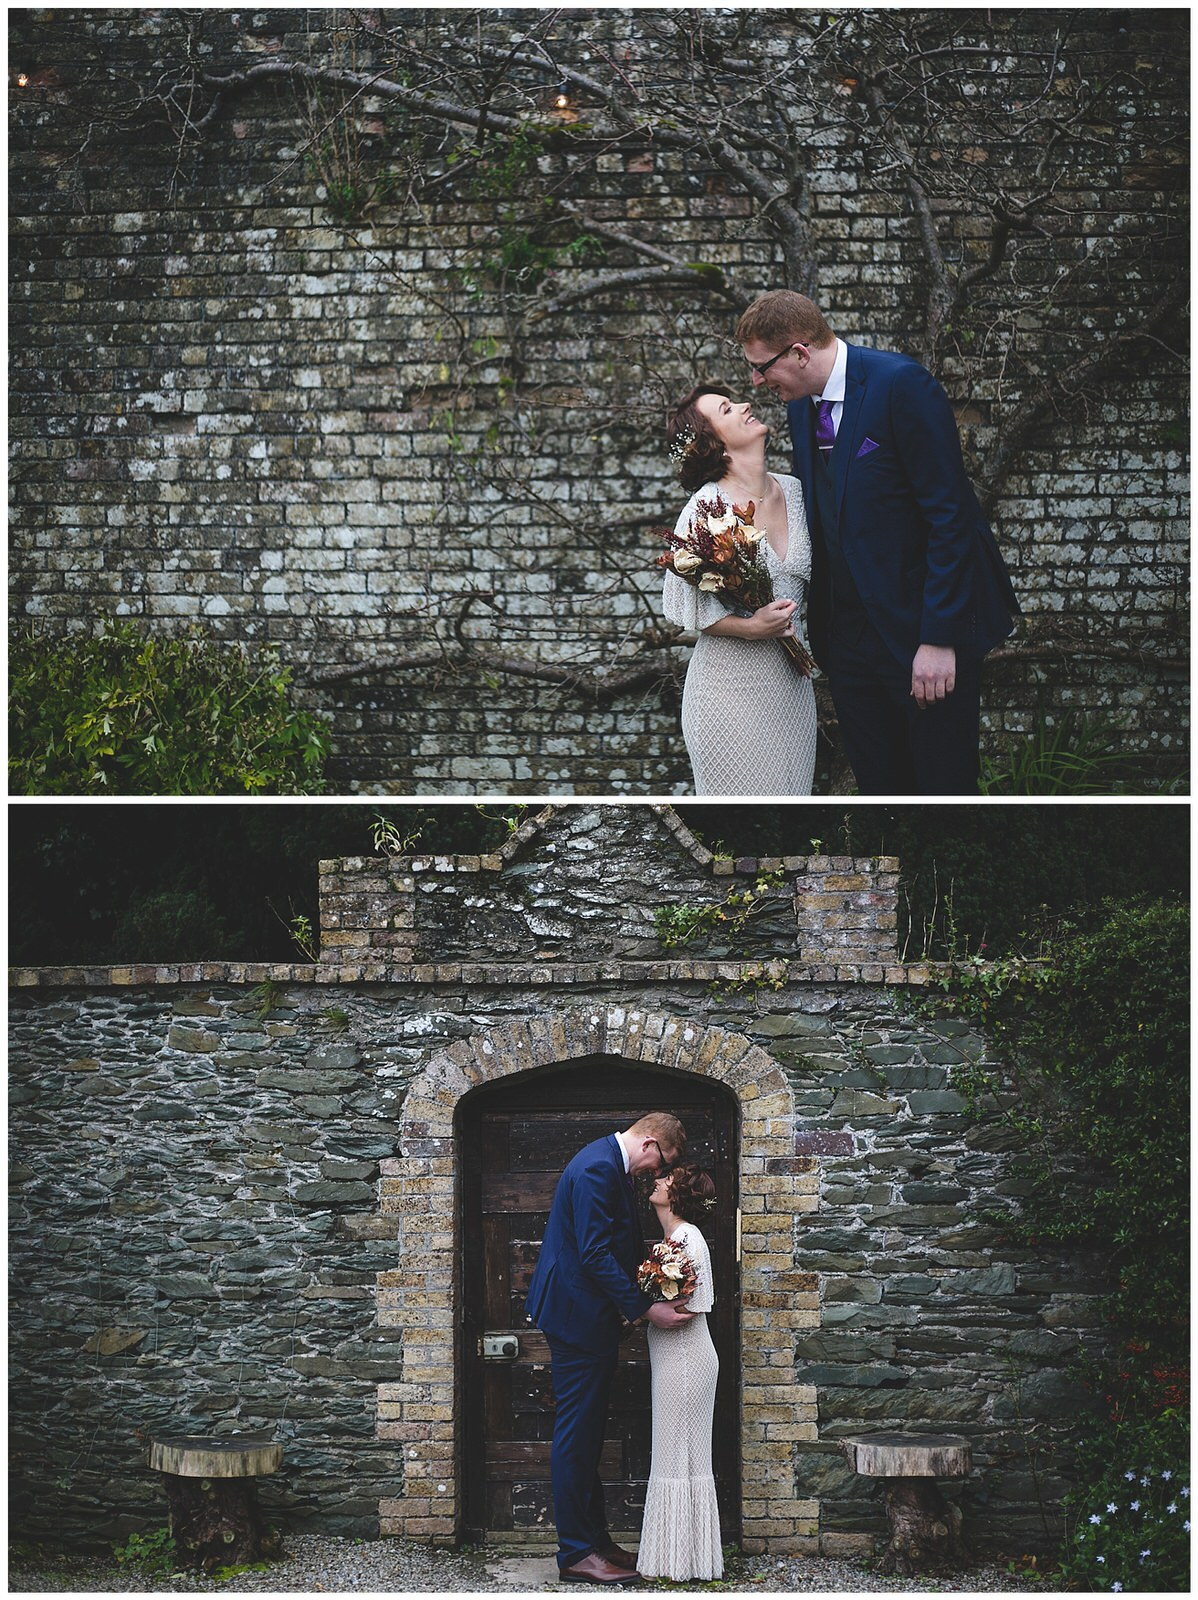 Wedding photography by Wild things wed